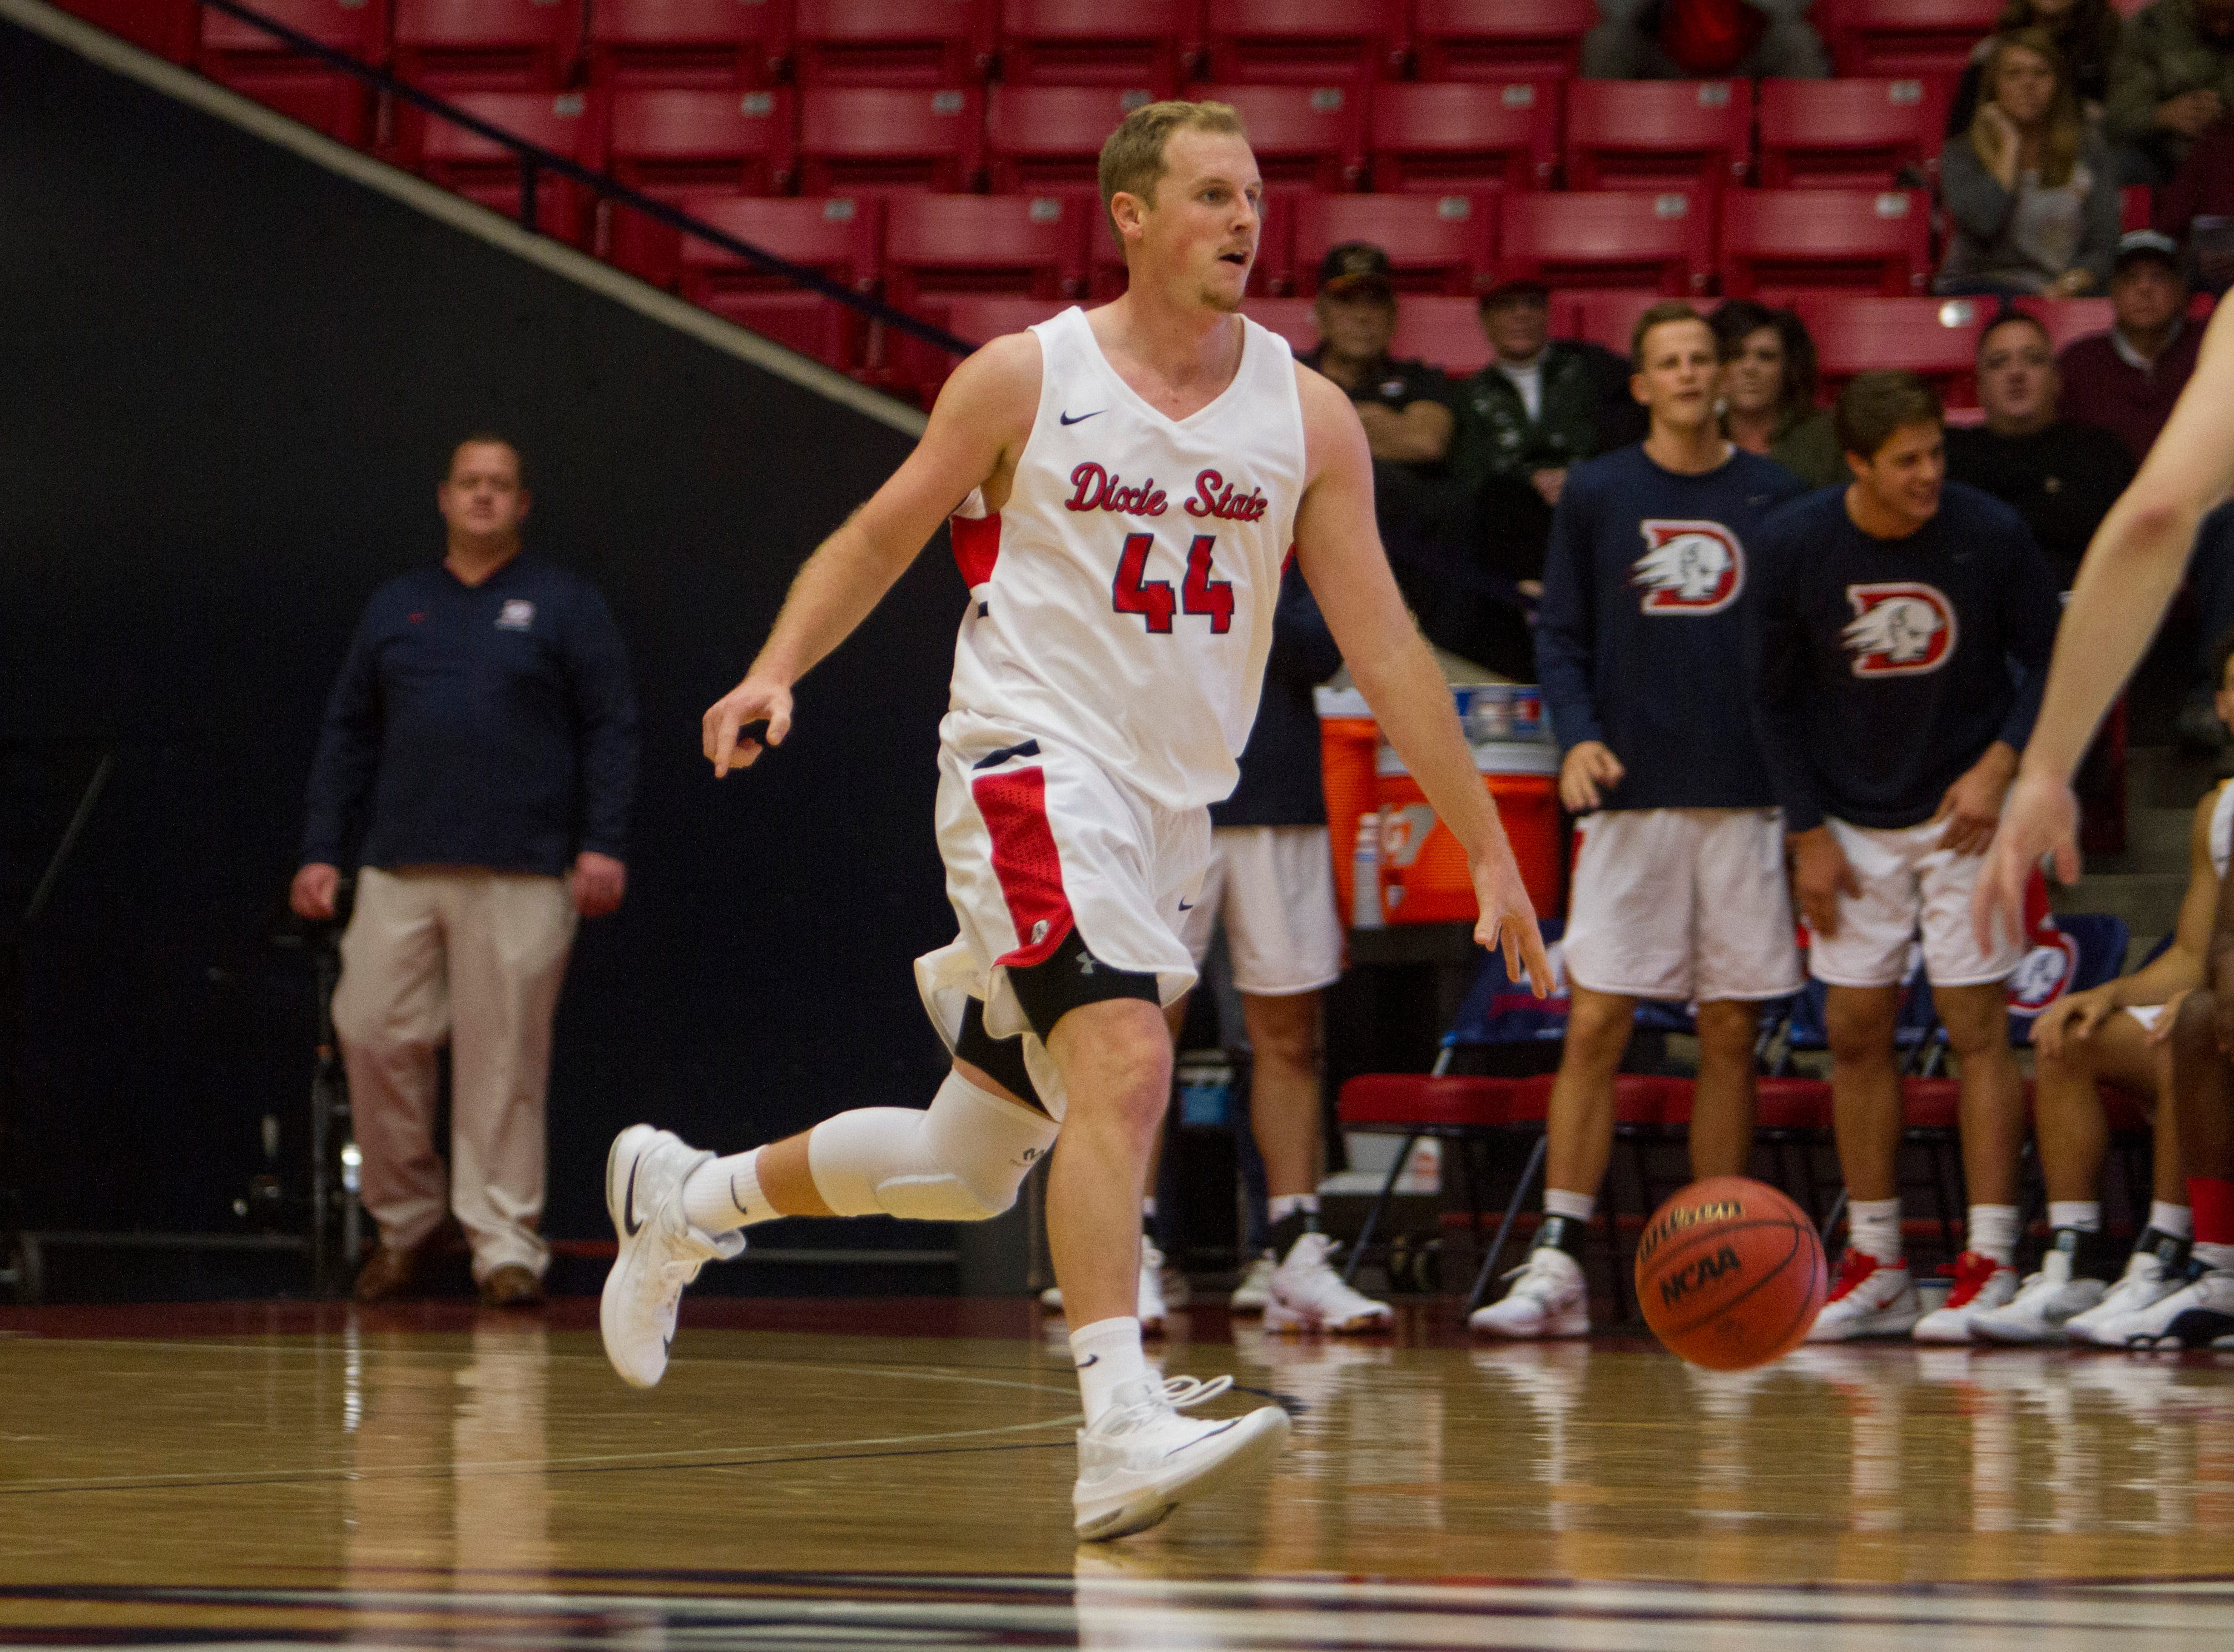 Wade Miller heads down the court as Dixie State basketball defeats Western Oregon University 80-70 on Nov. 24, 2018.